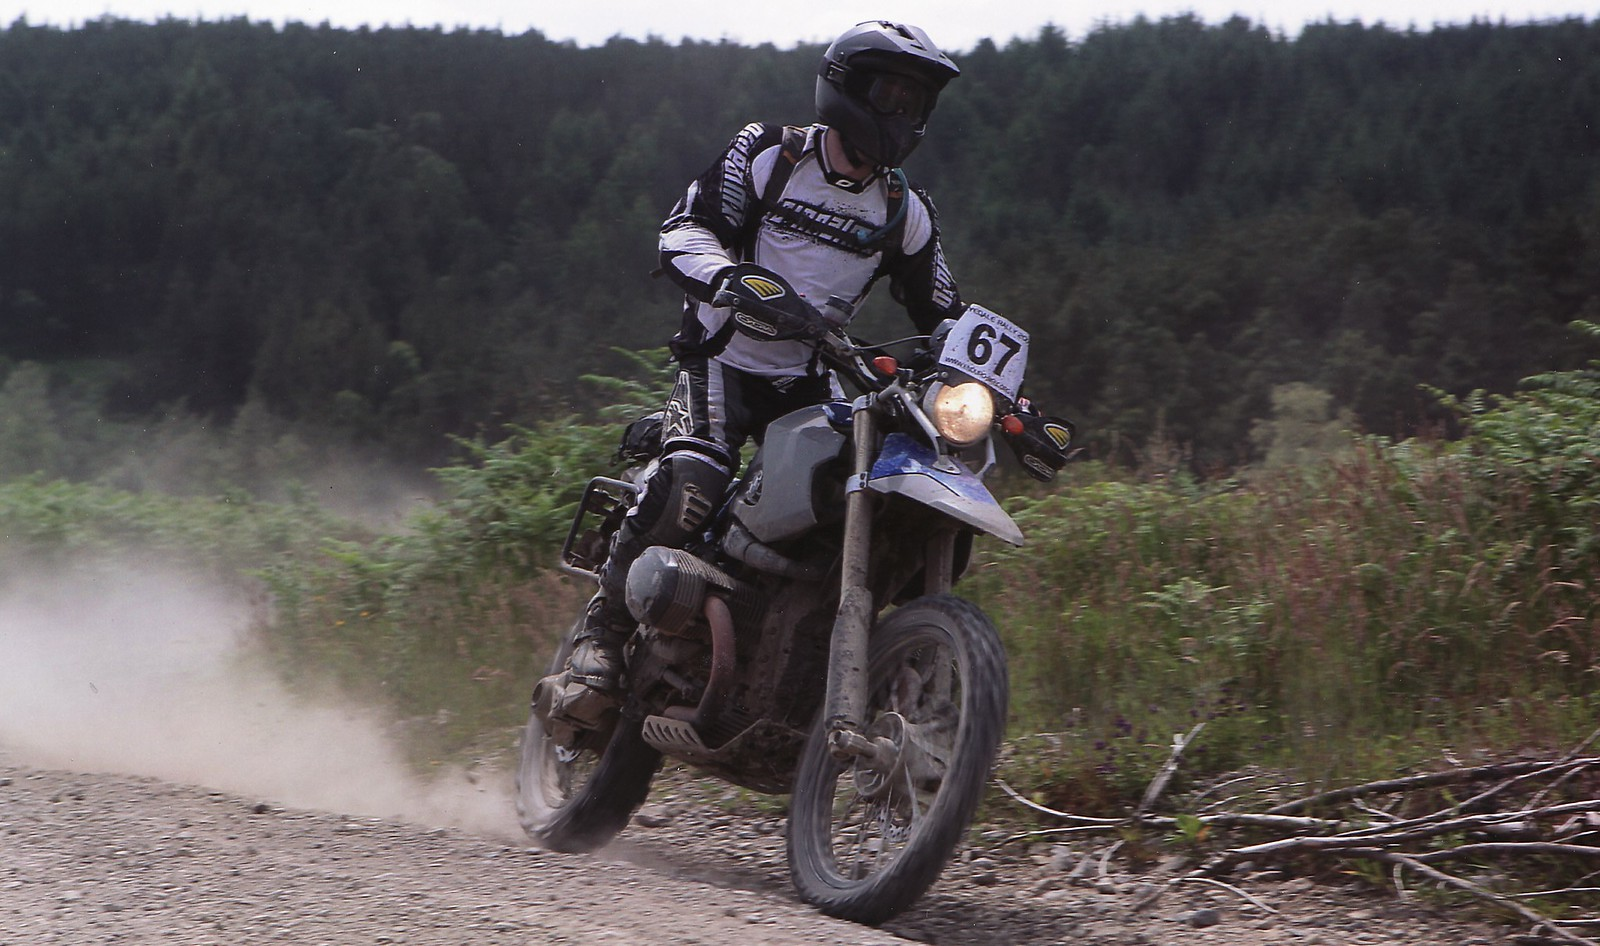 My first race on the HP2, The Rydale Rally